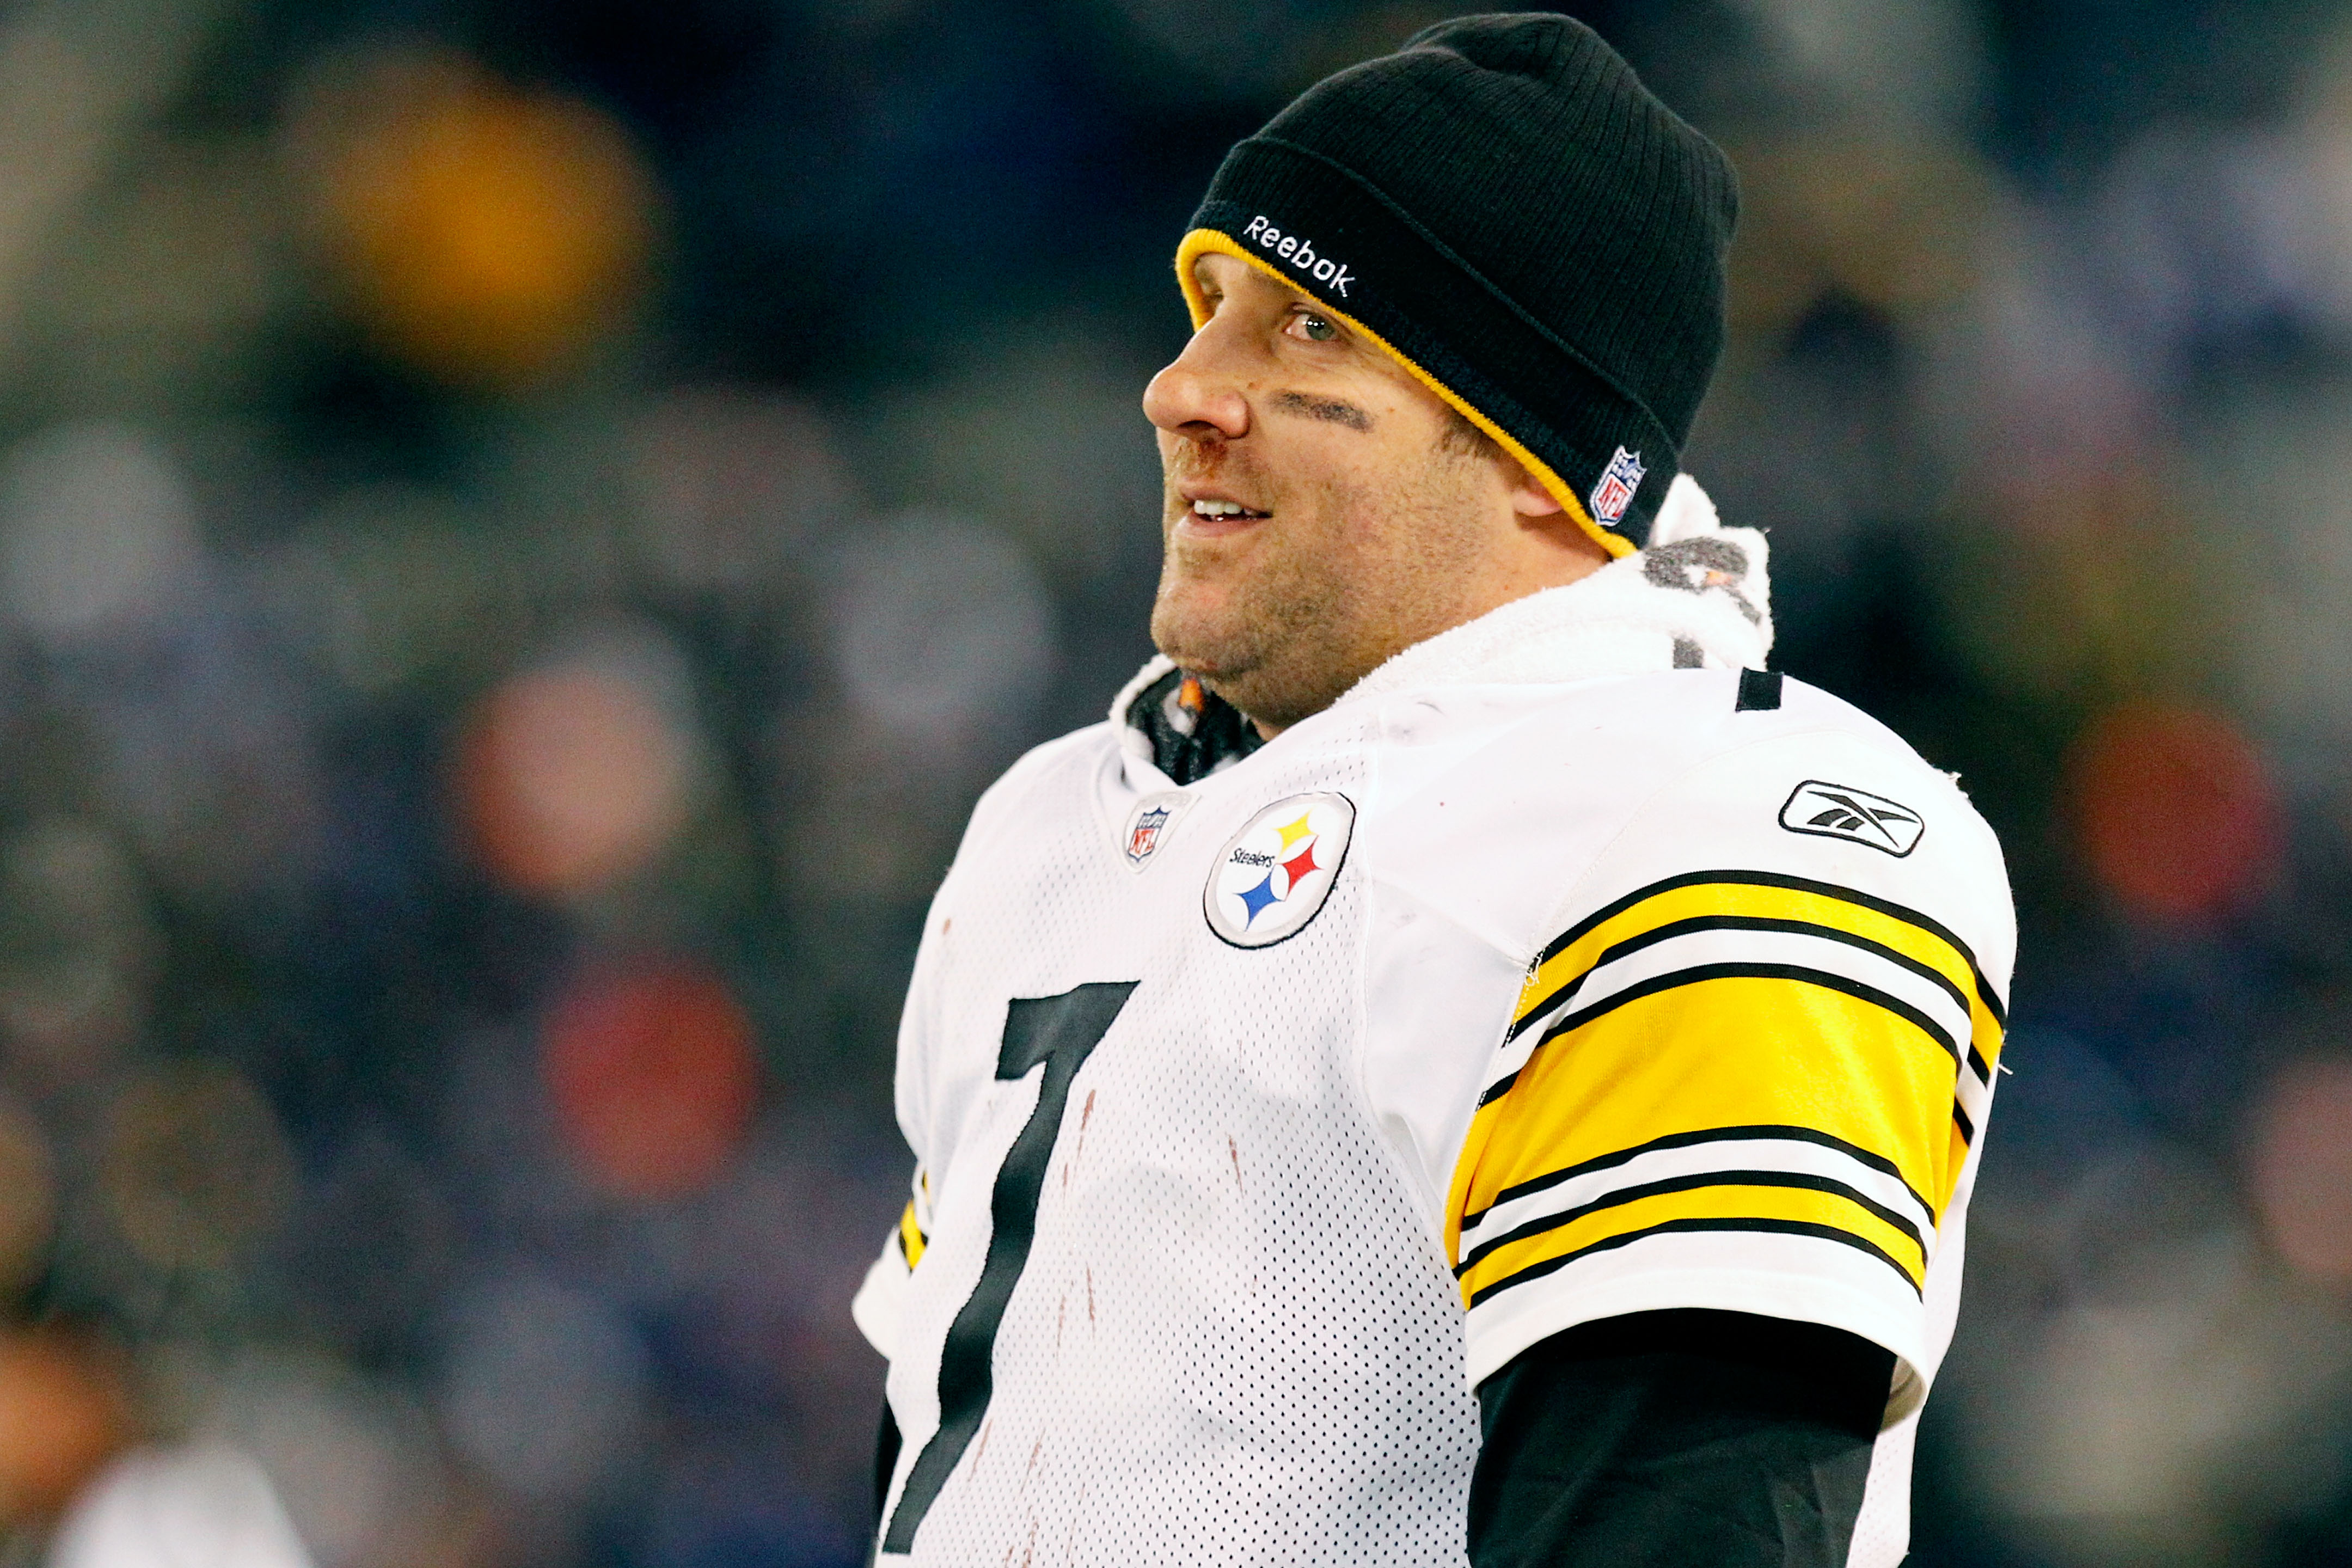 BALTIMORE, MD - DECEMBER 05:  Quarterback Ben Roethlisberger #7 of the Pittsburgh Steelers looks on from the sidelines during the fourth quarter of the game against the Baltimore Ravens at M&T Bank Stadium on December 5, 2010 in Baltimore, Maryland. Pitts